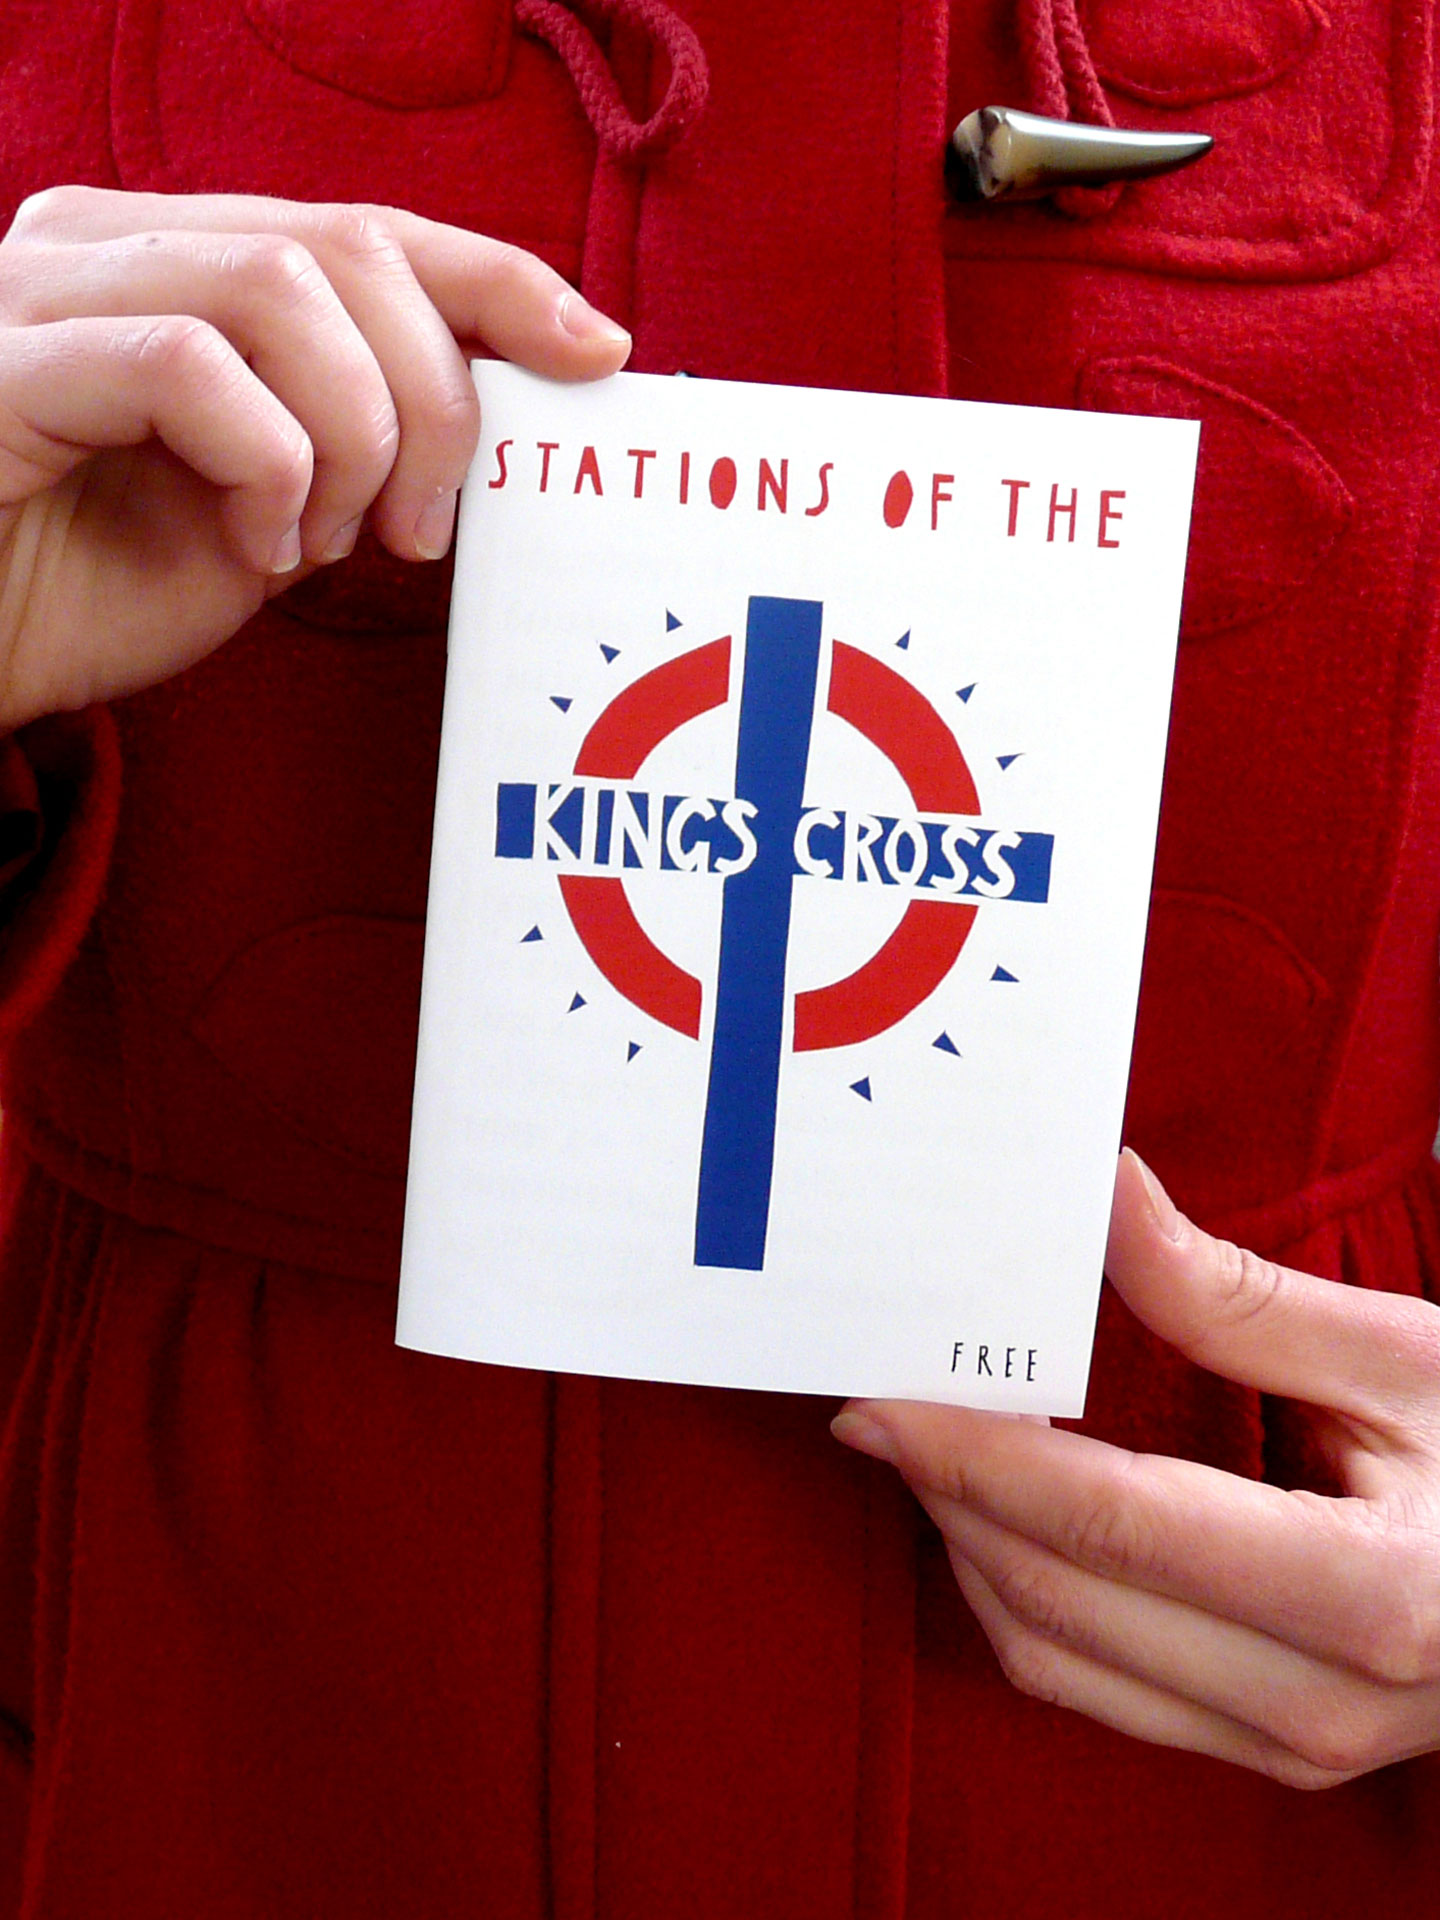 Stations of the Kings Cross booklet being held